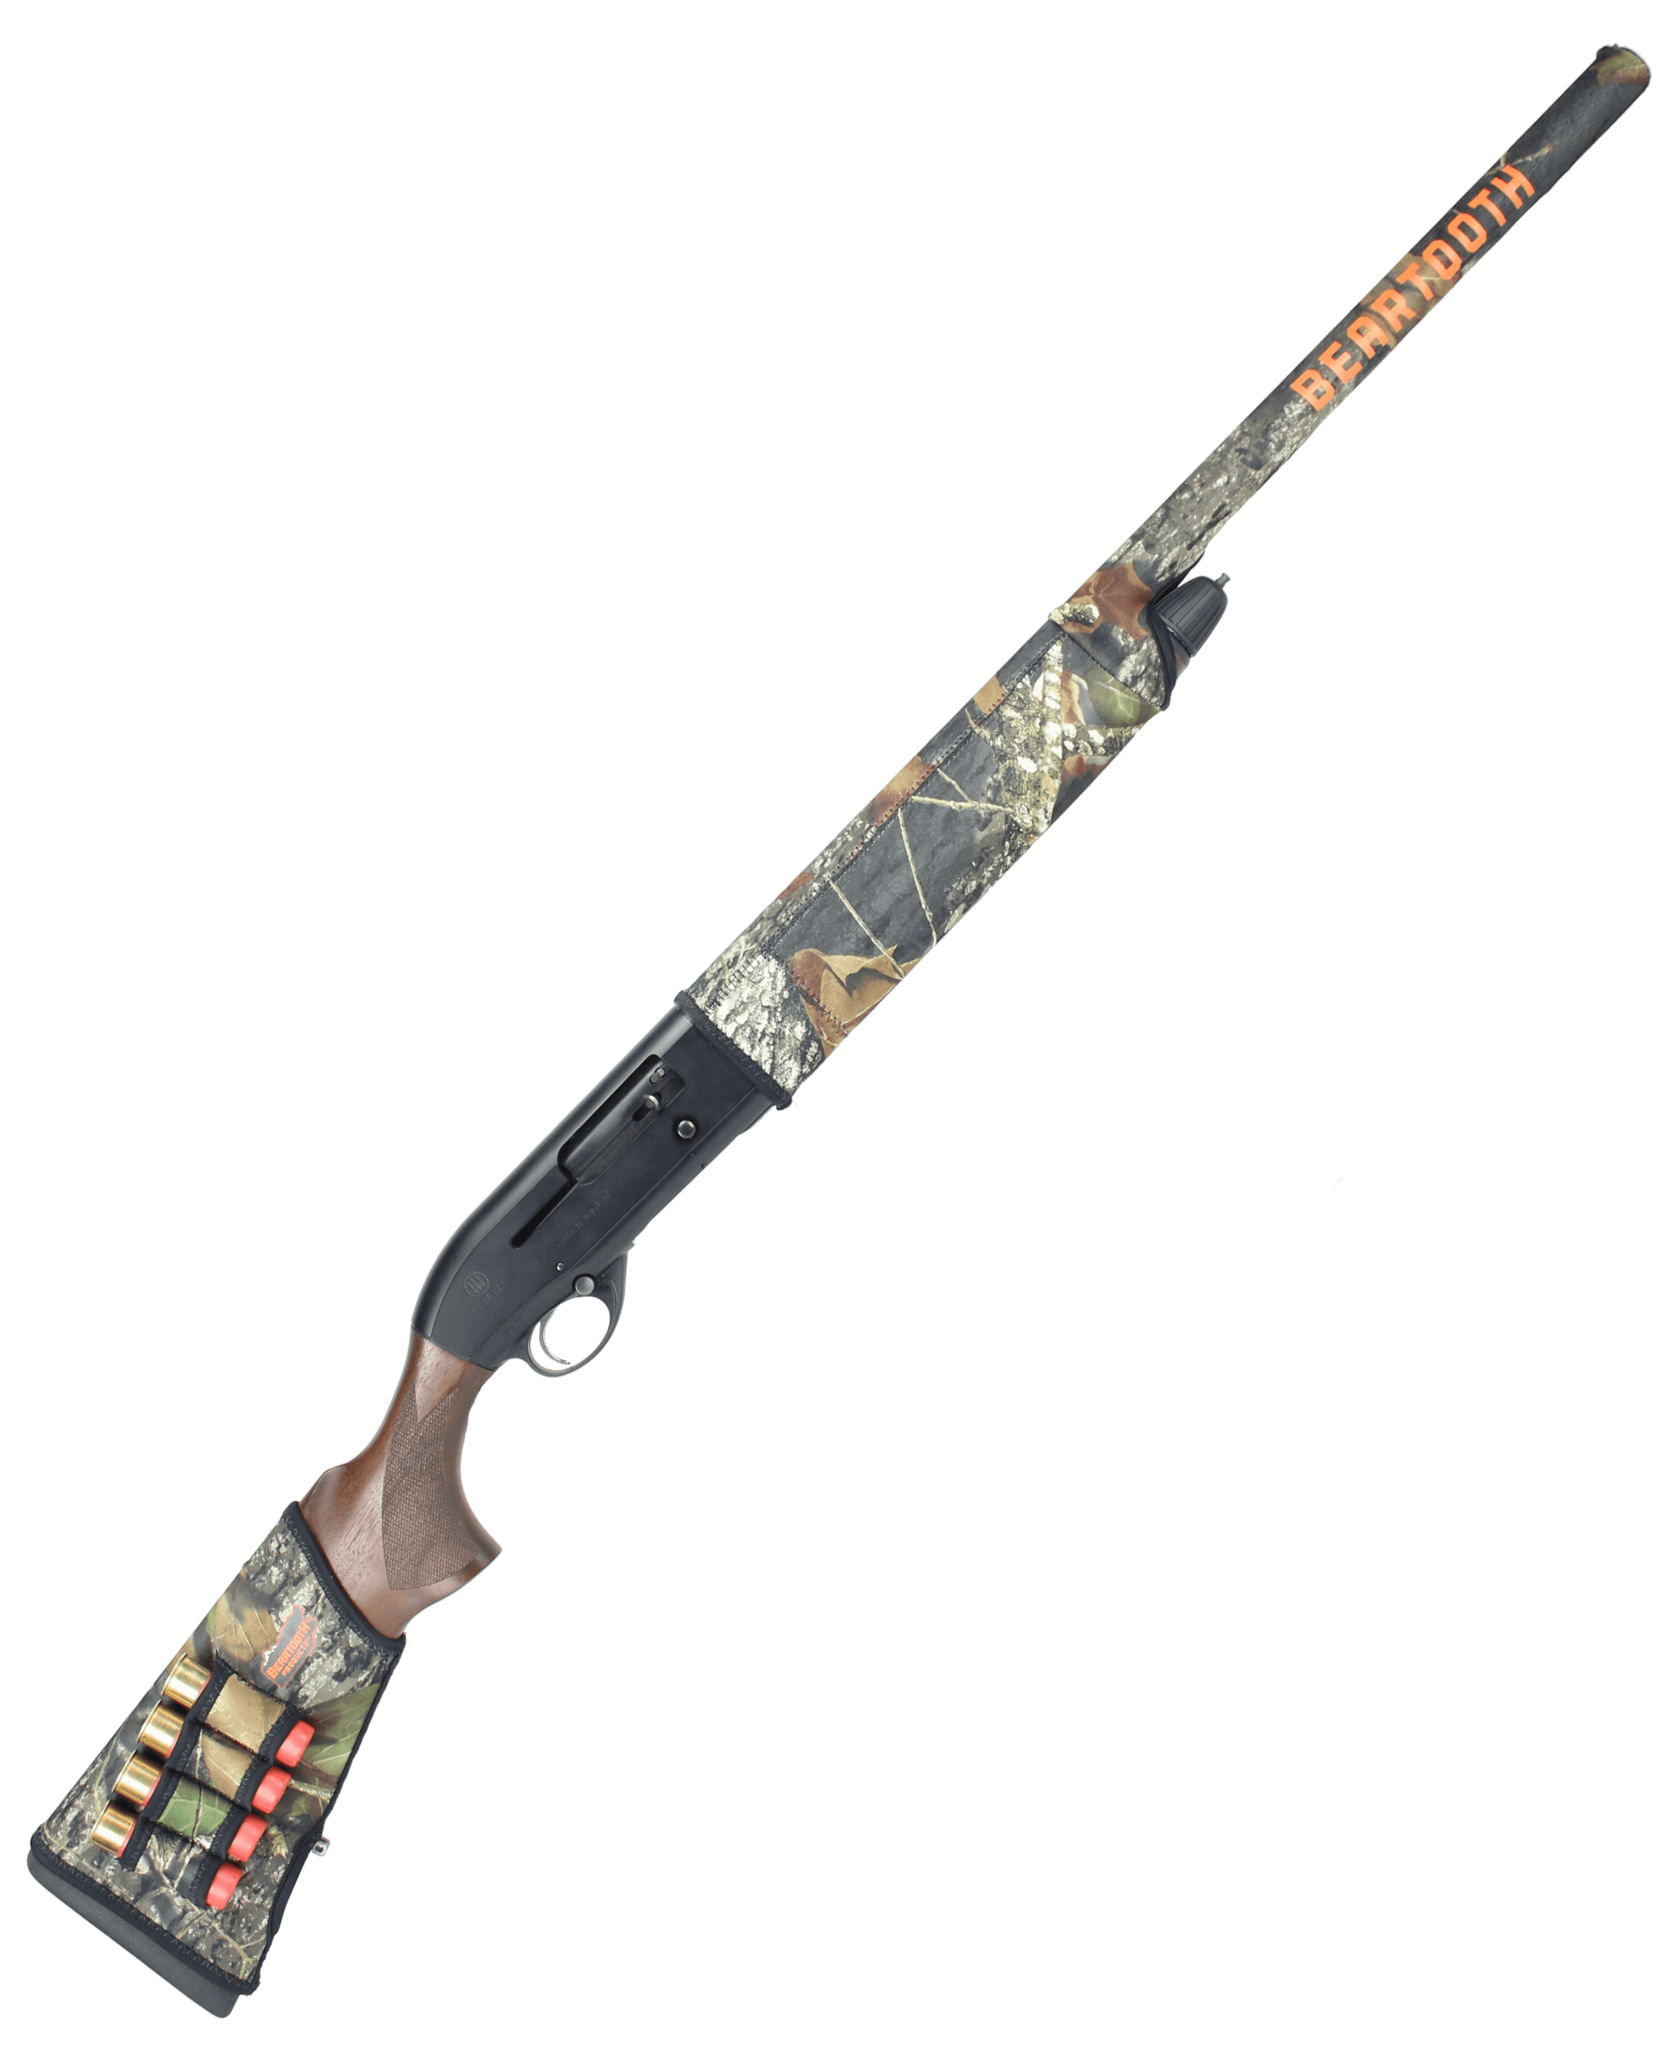 2-PIECE KIT - Semi-Auto Shotgun Model in Mossy Oak Break-up